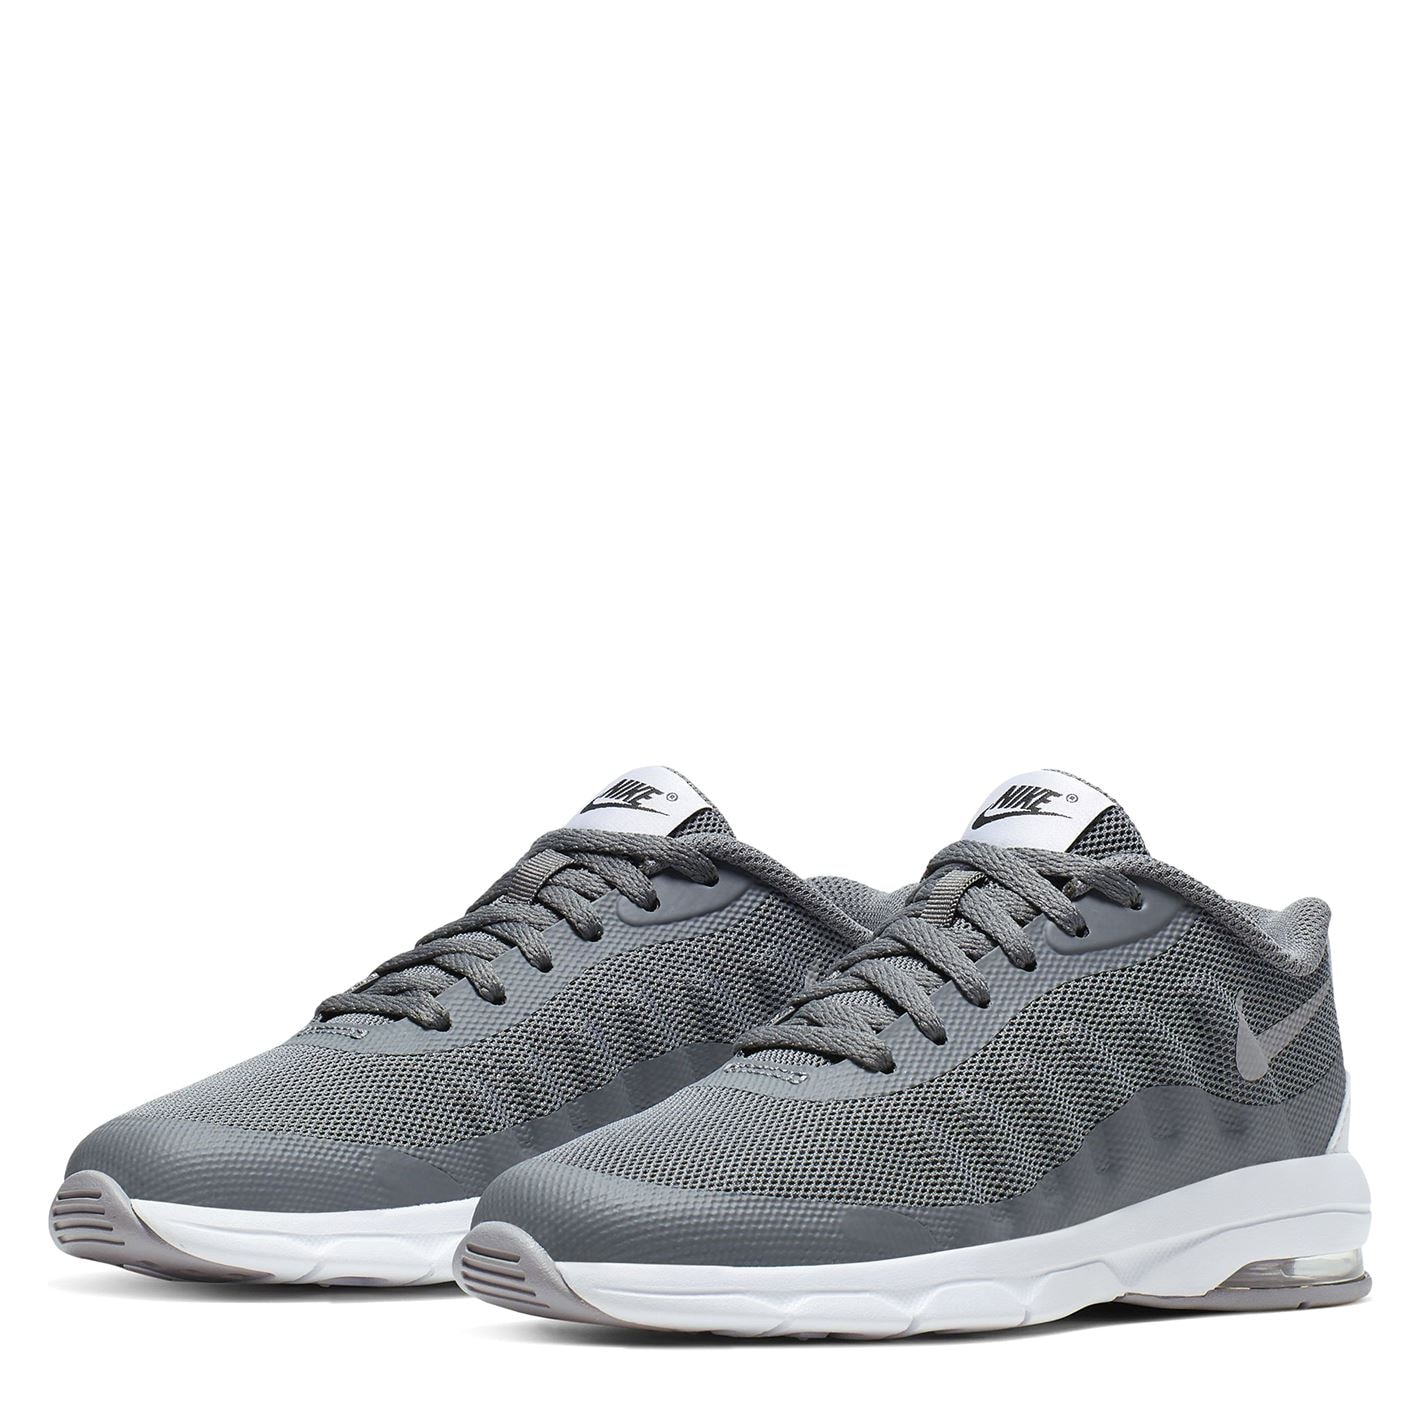 Nike Air Max Invigor Little Kids Shoe COOL GREY/WOLF GREY-ANTHRACITE